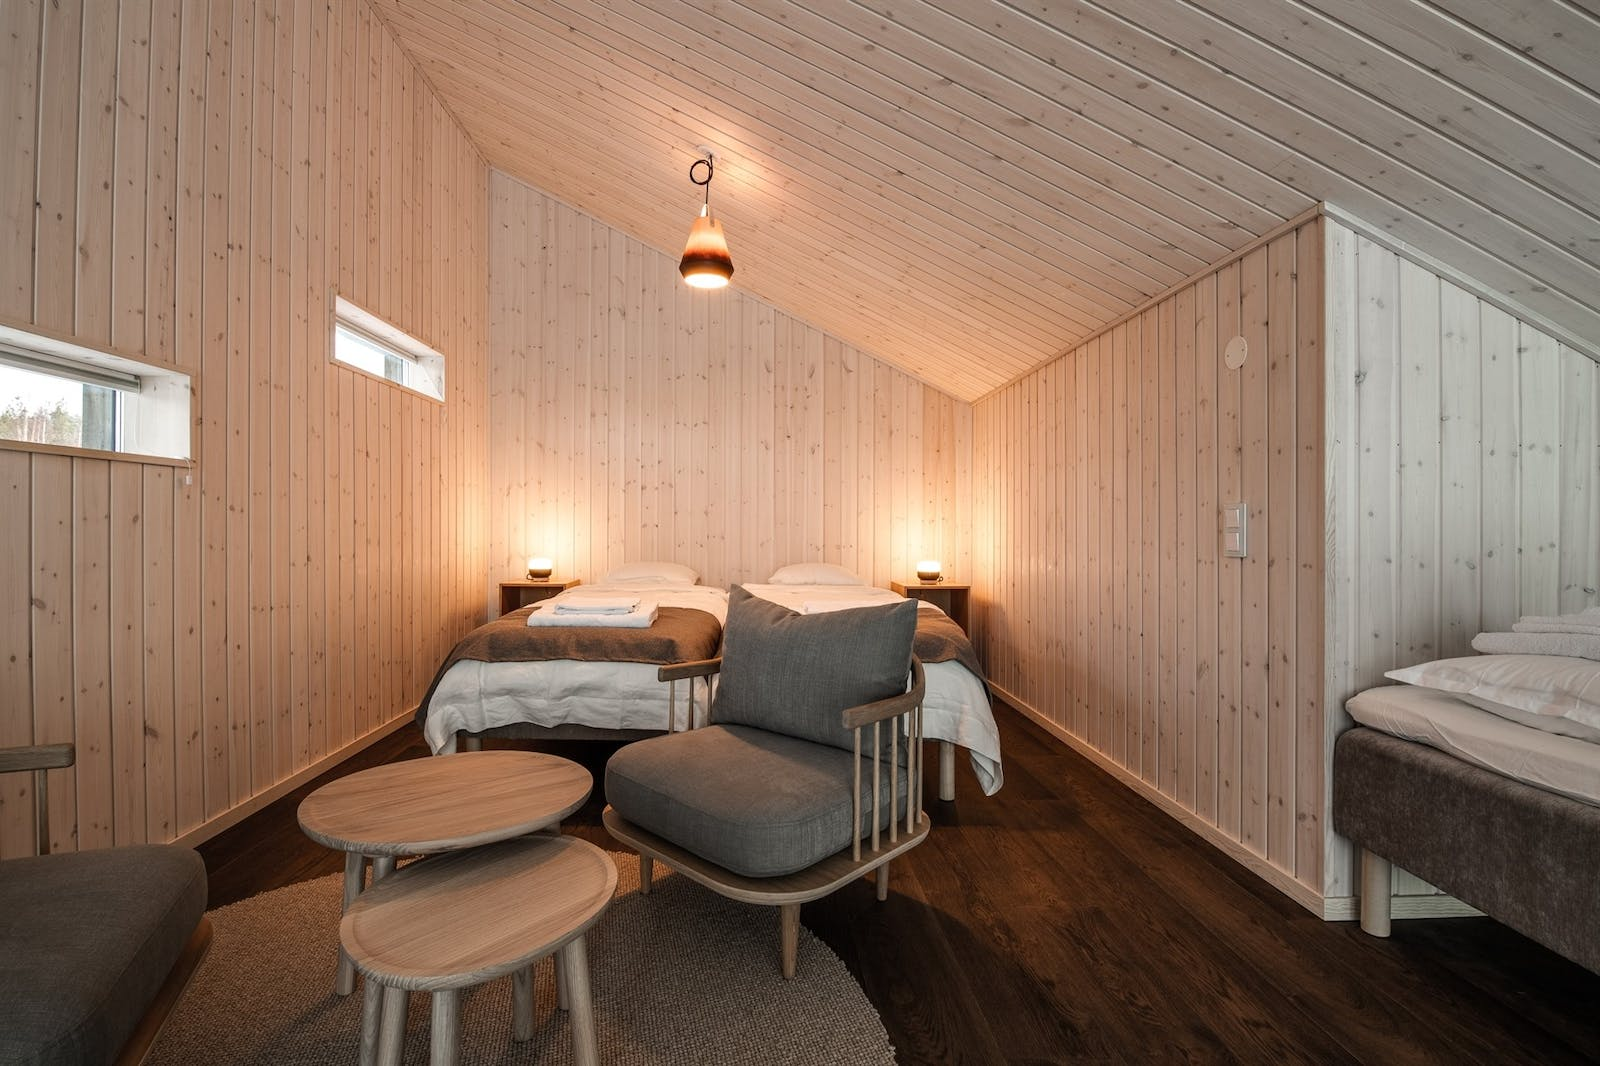 Floating cabin bedroom, Arctic Bath, Sweden